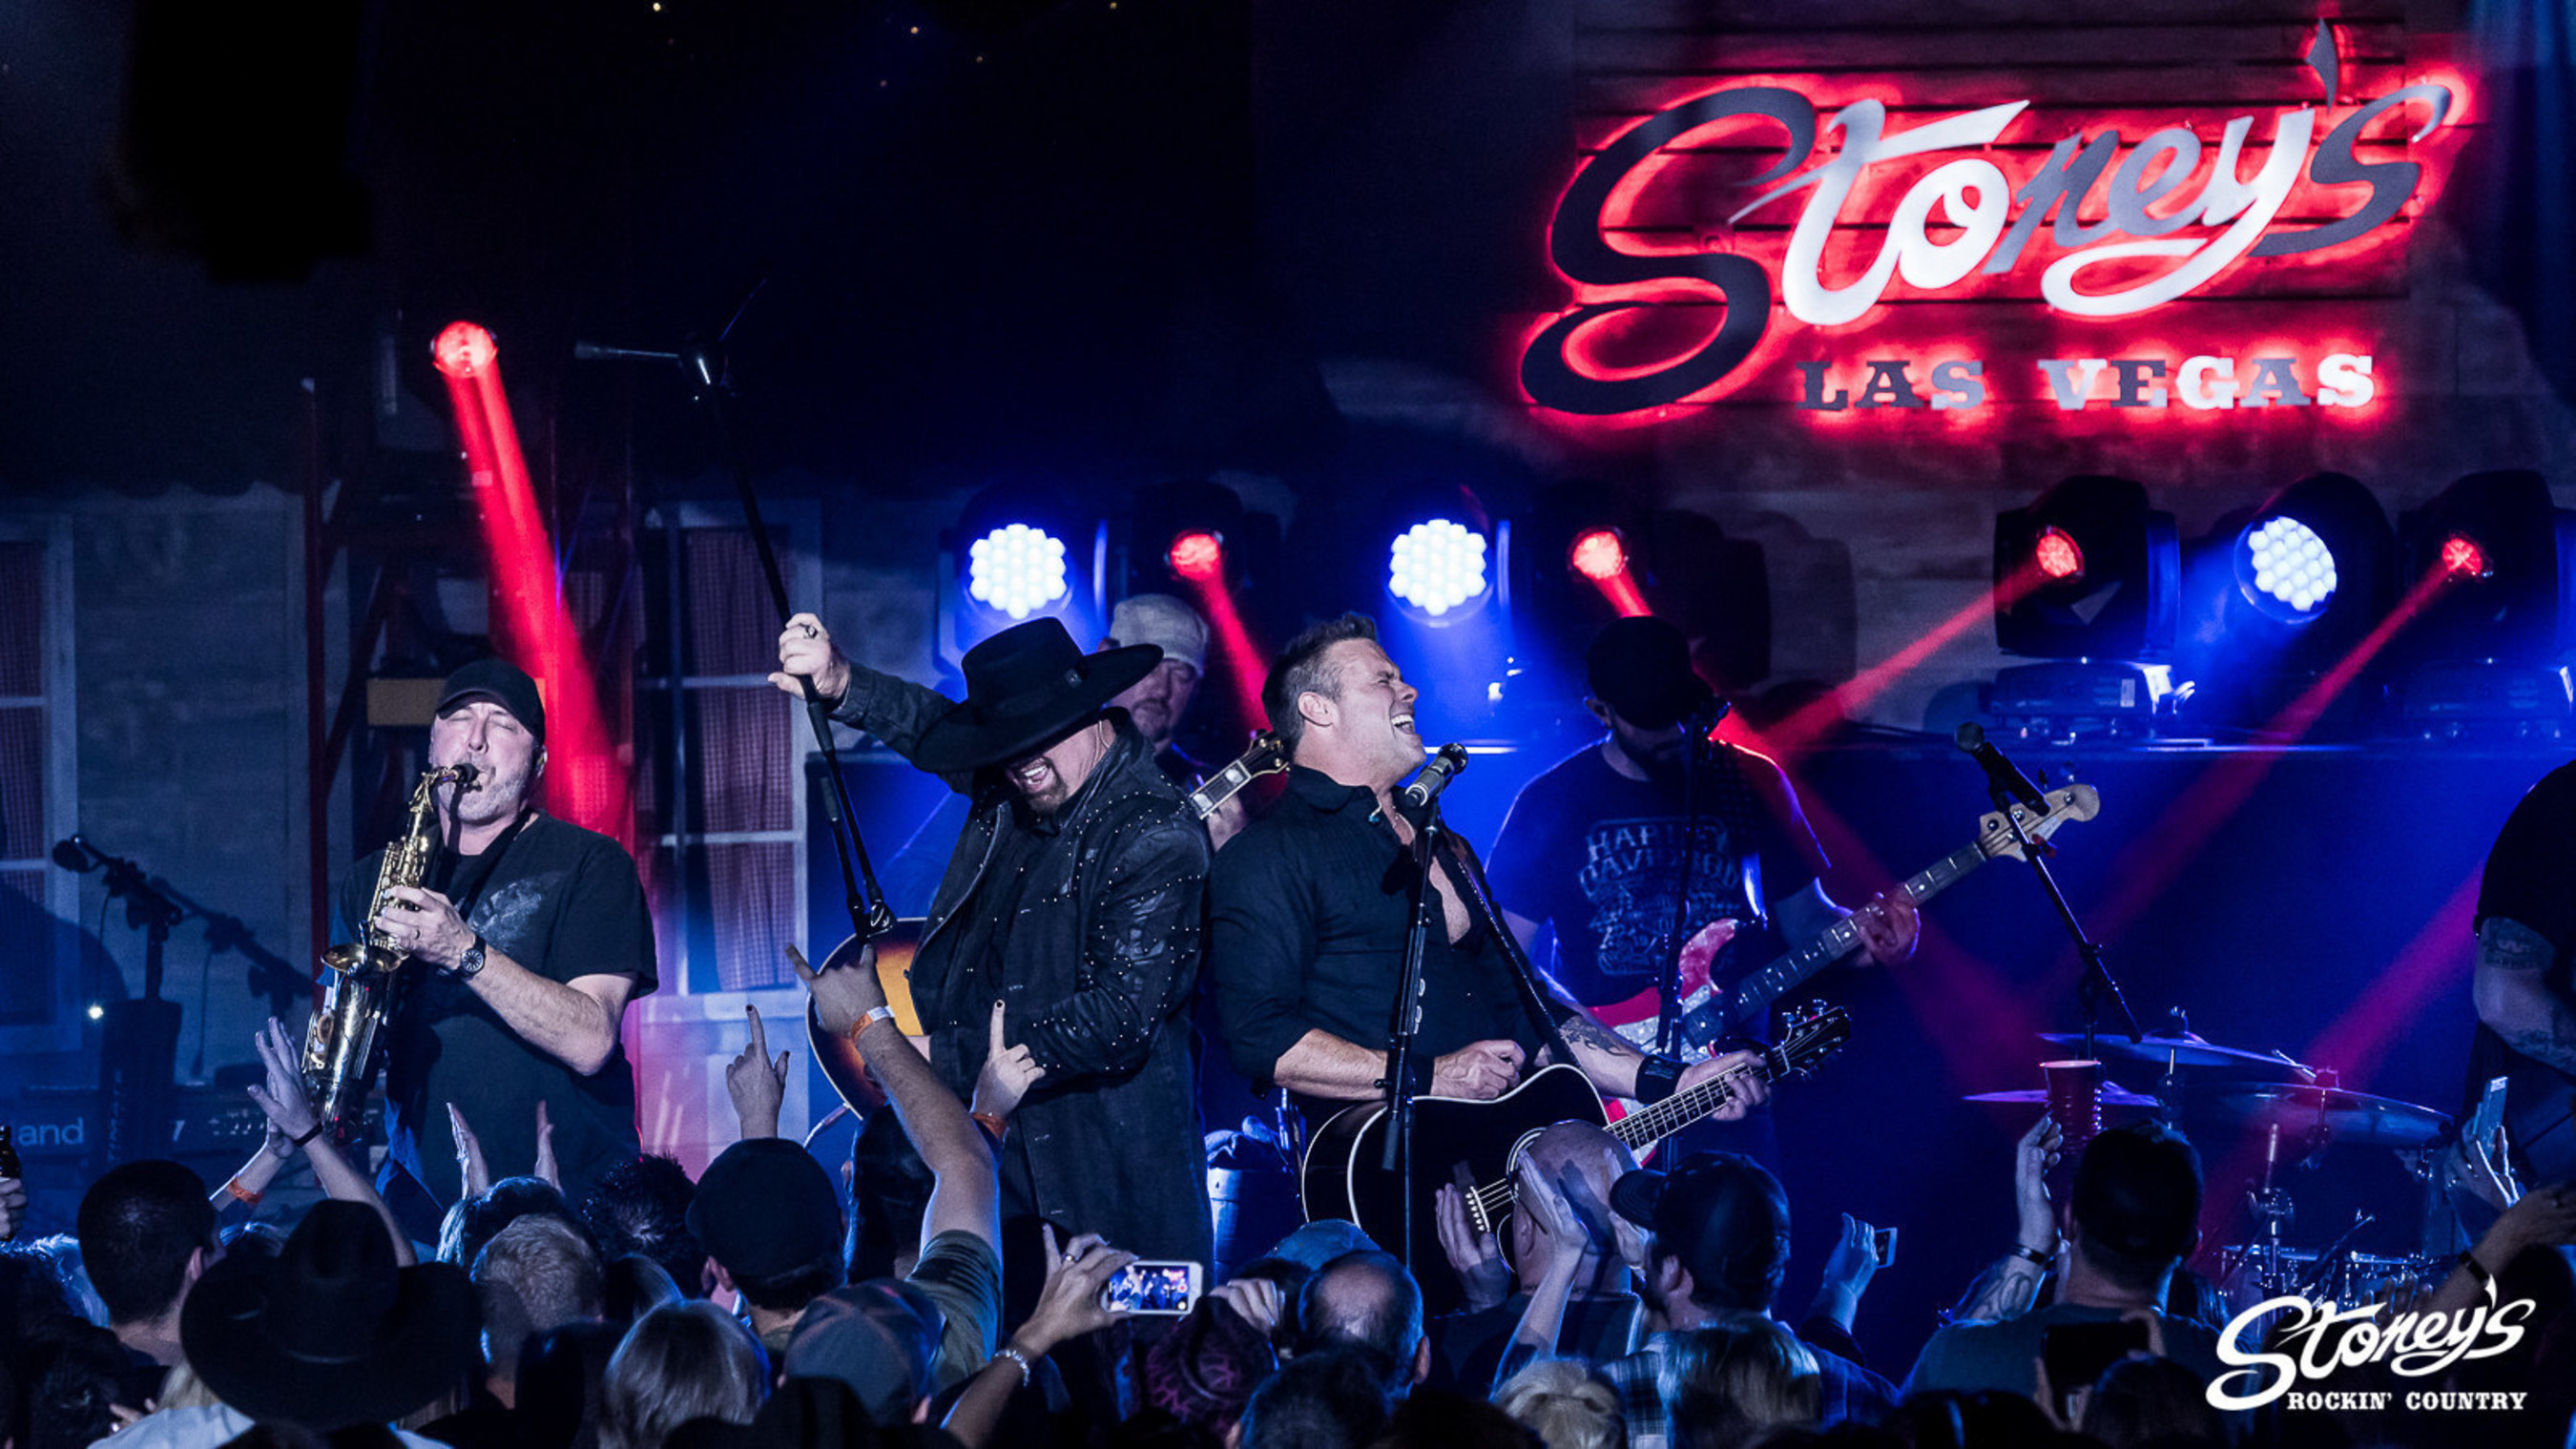 Montgomery Gentry put on an amazing show to a sold-out crowd at Stoney's Rockin' Country.